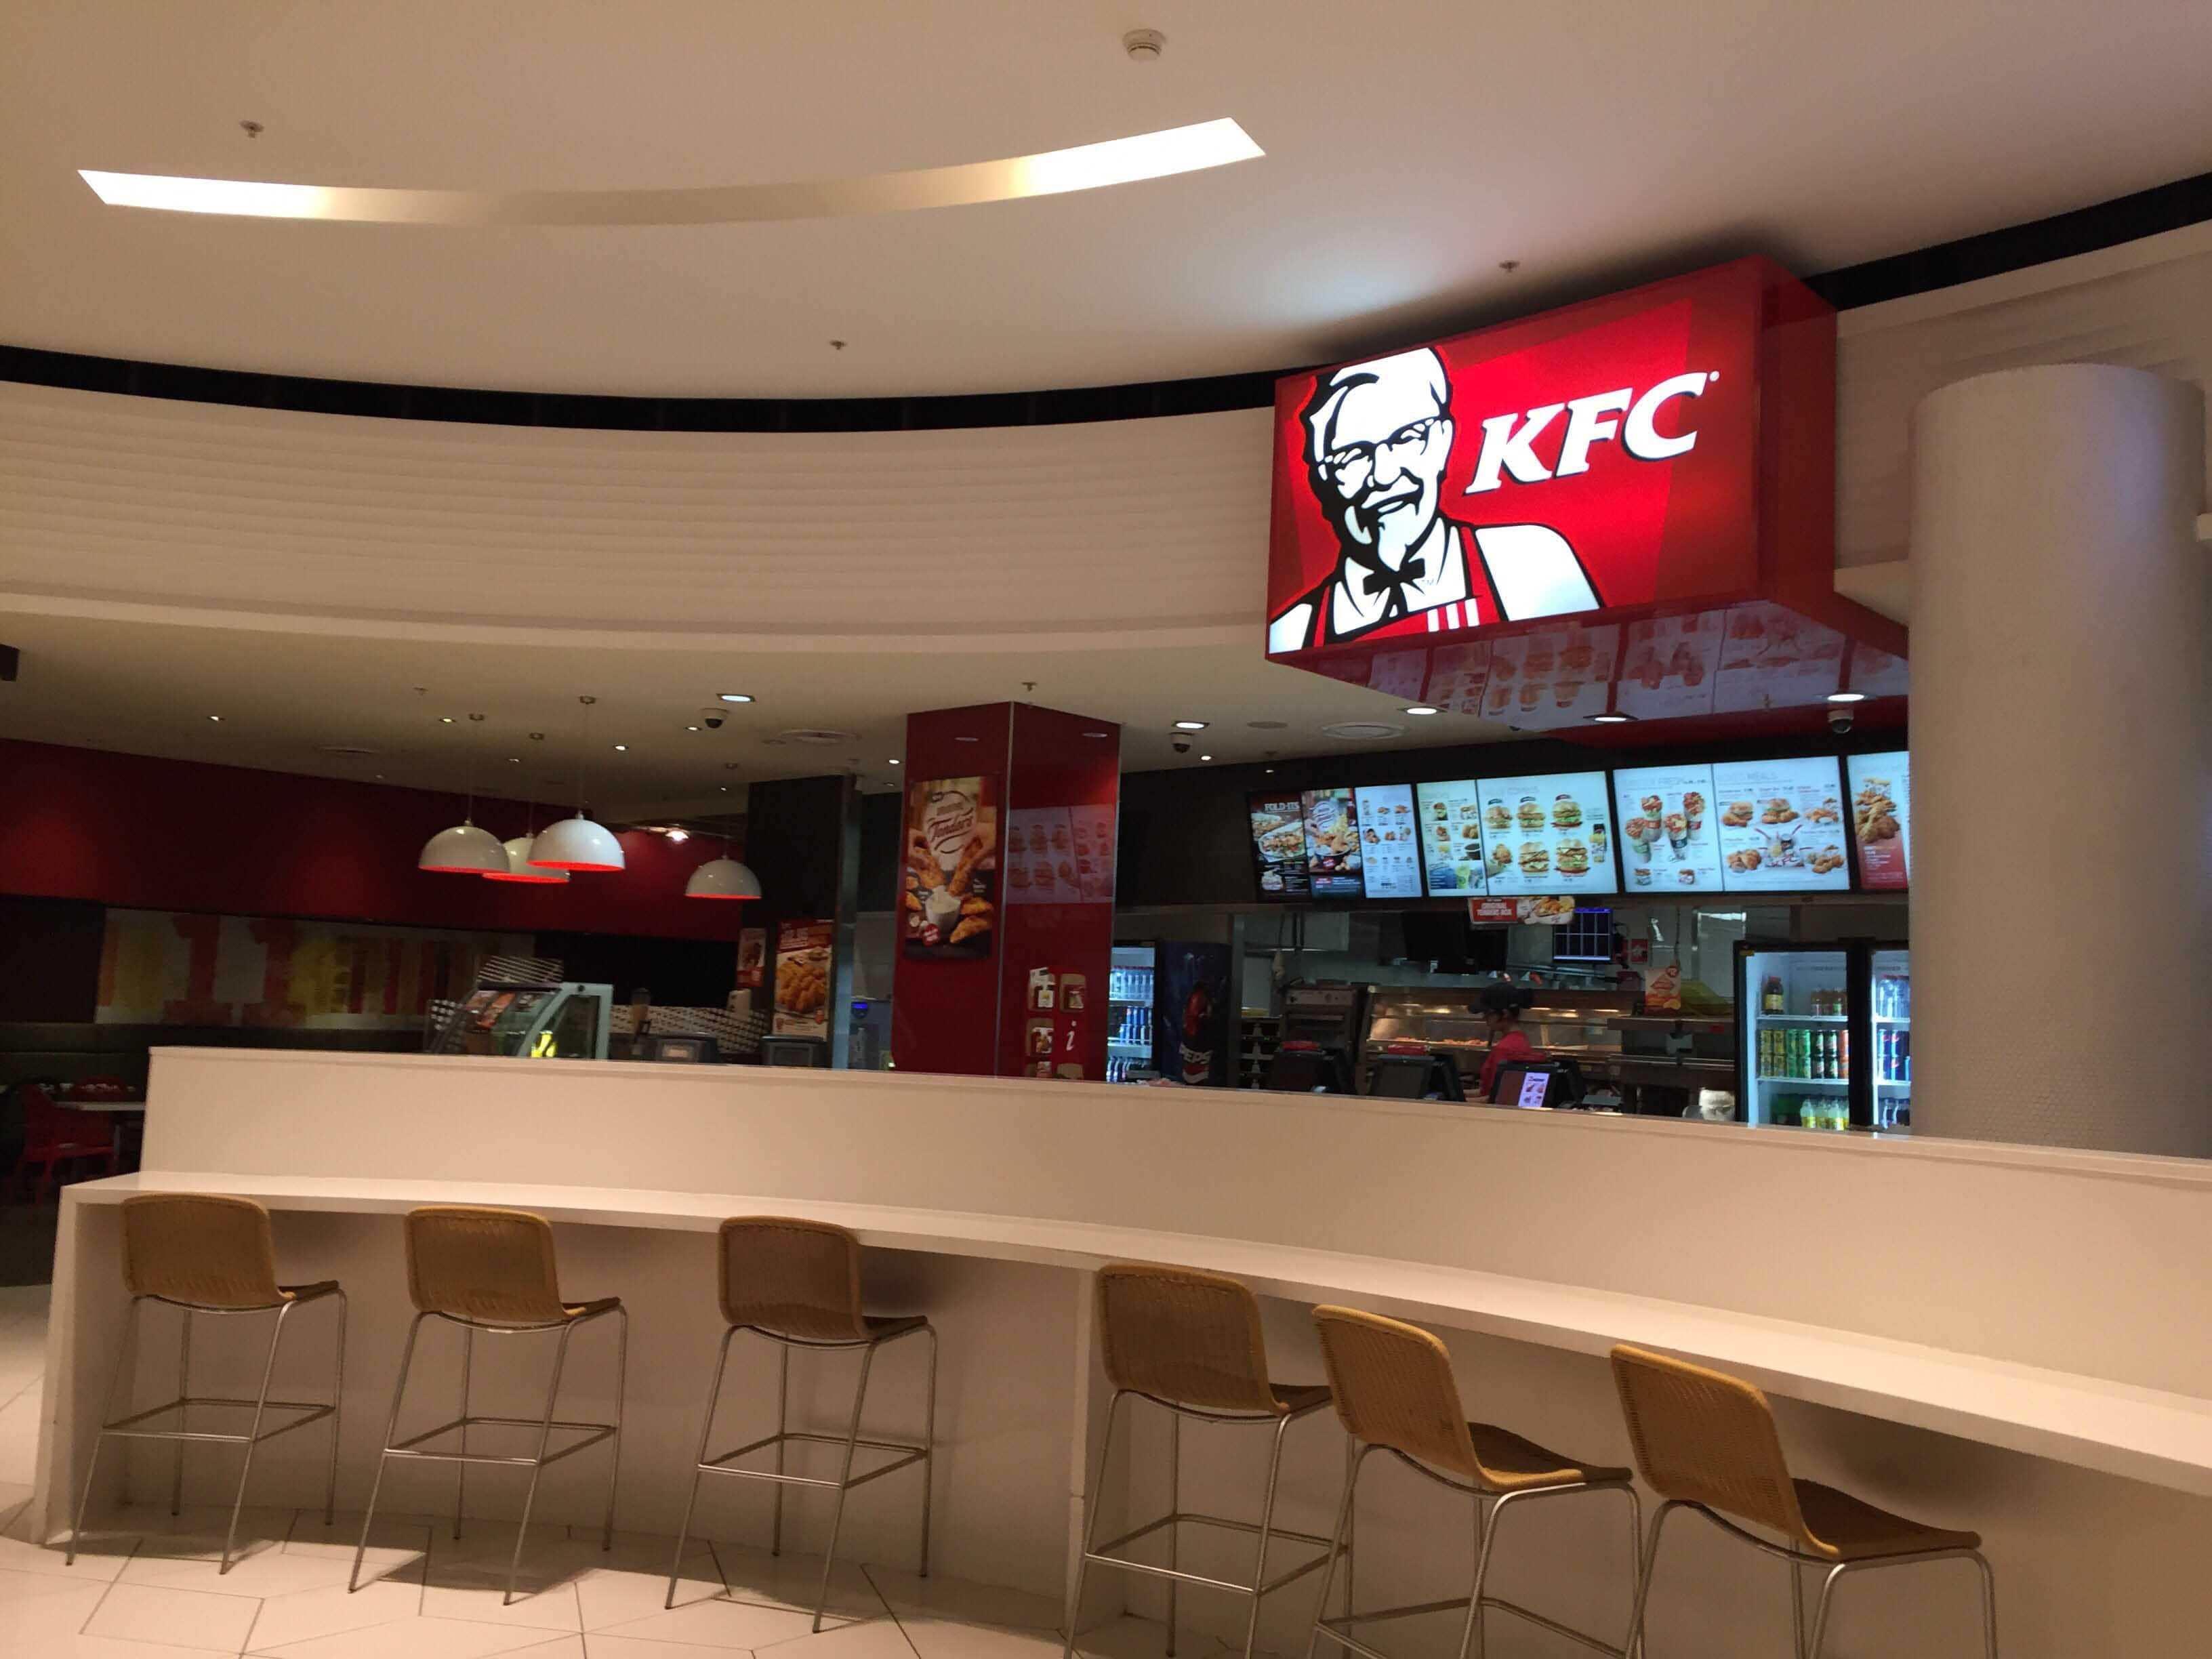 Kfc crown casino opening hours hotel casino barriere touquet